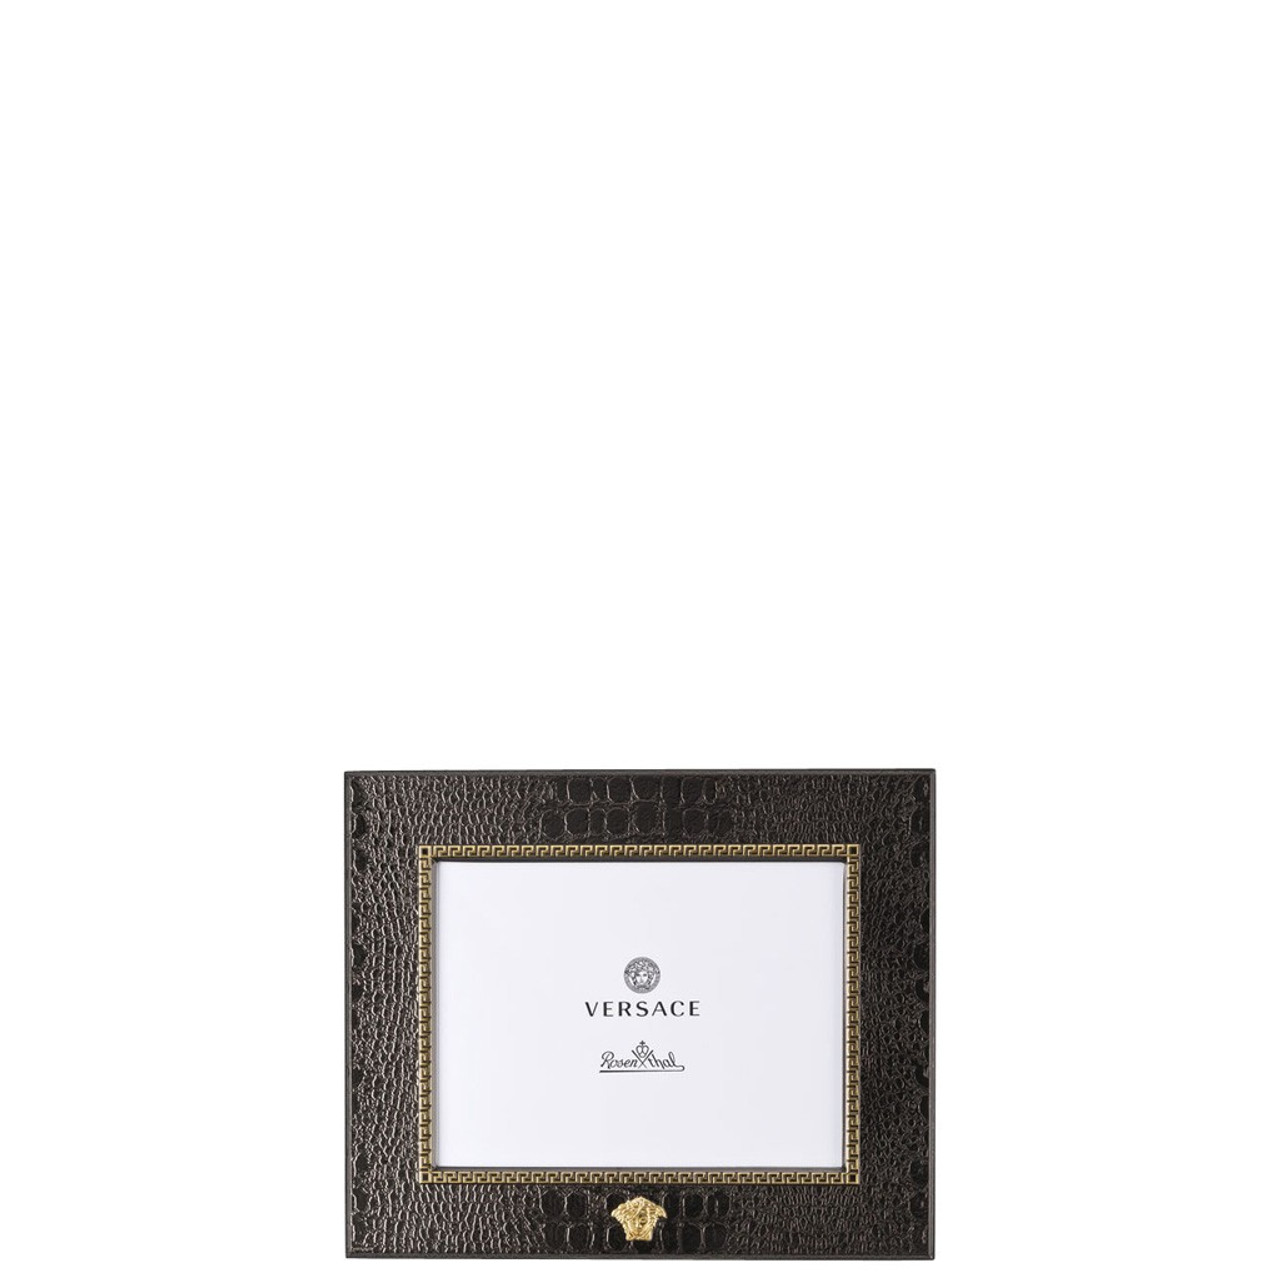 Black Picture Frame, 4 x 6 inch | Picture Frames| Rosenthal Shop